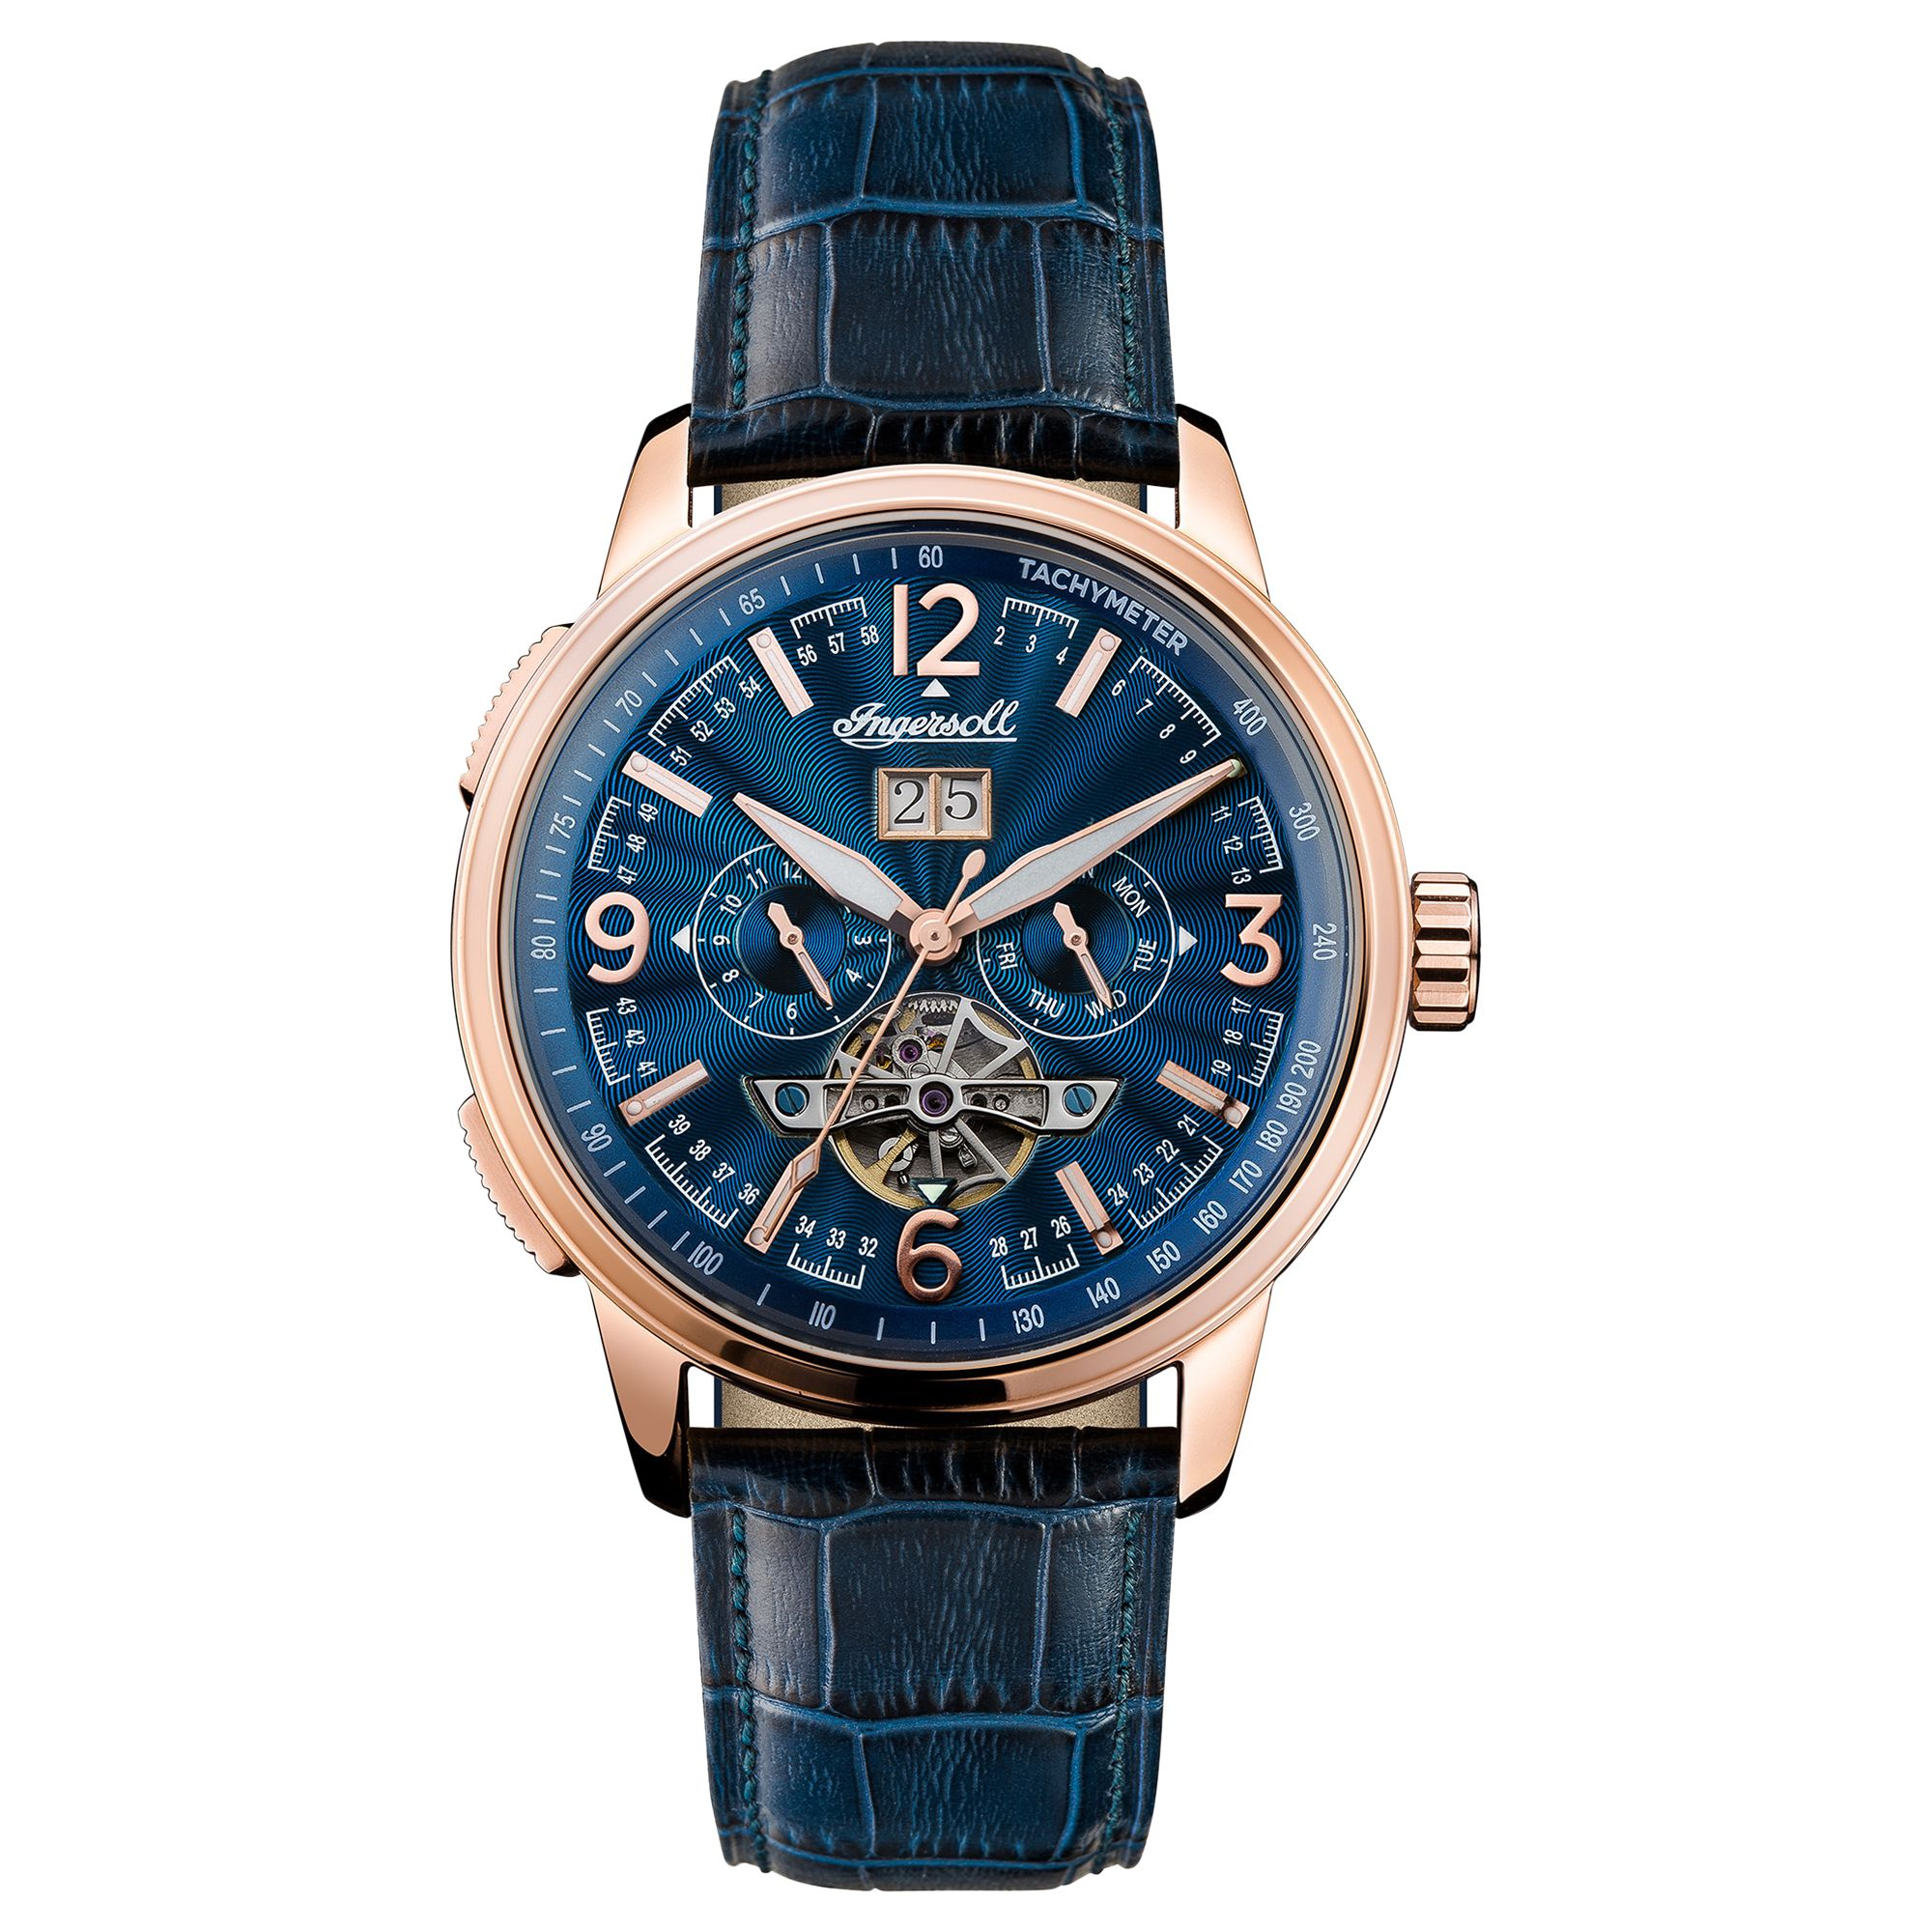 Ingersoll Ingersoll Men's The Regent Automatic Chronograph Date Heartbeat Leather Strap Watch